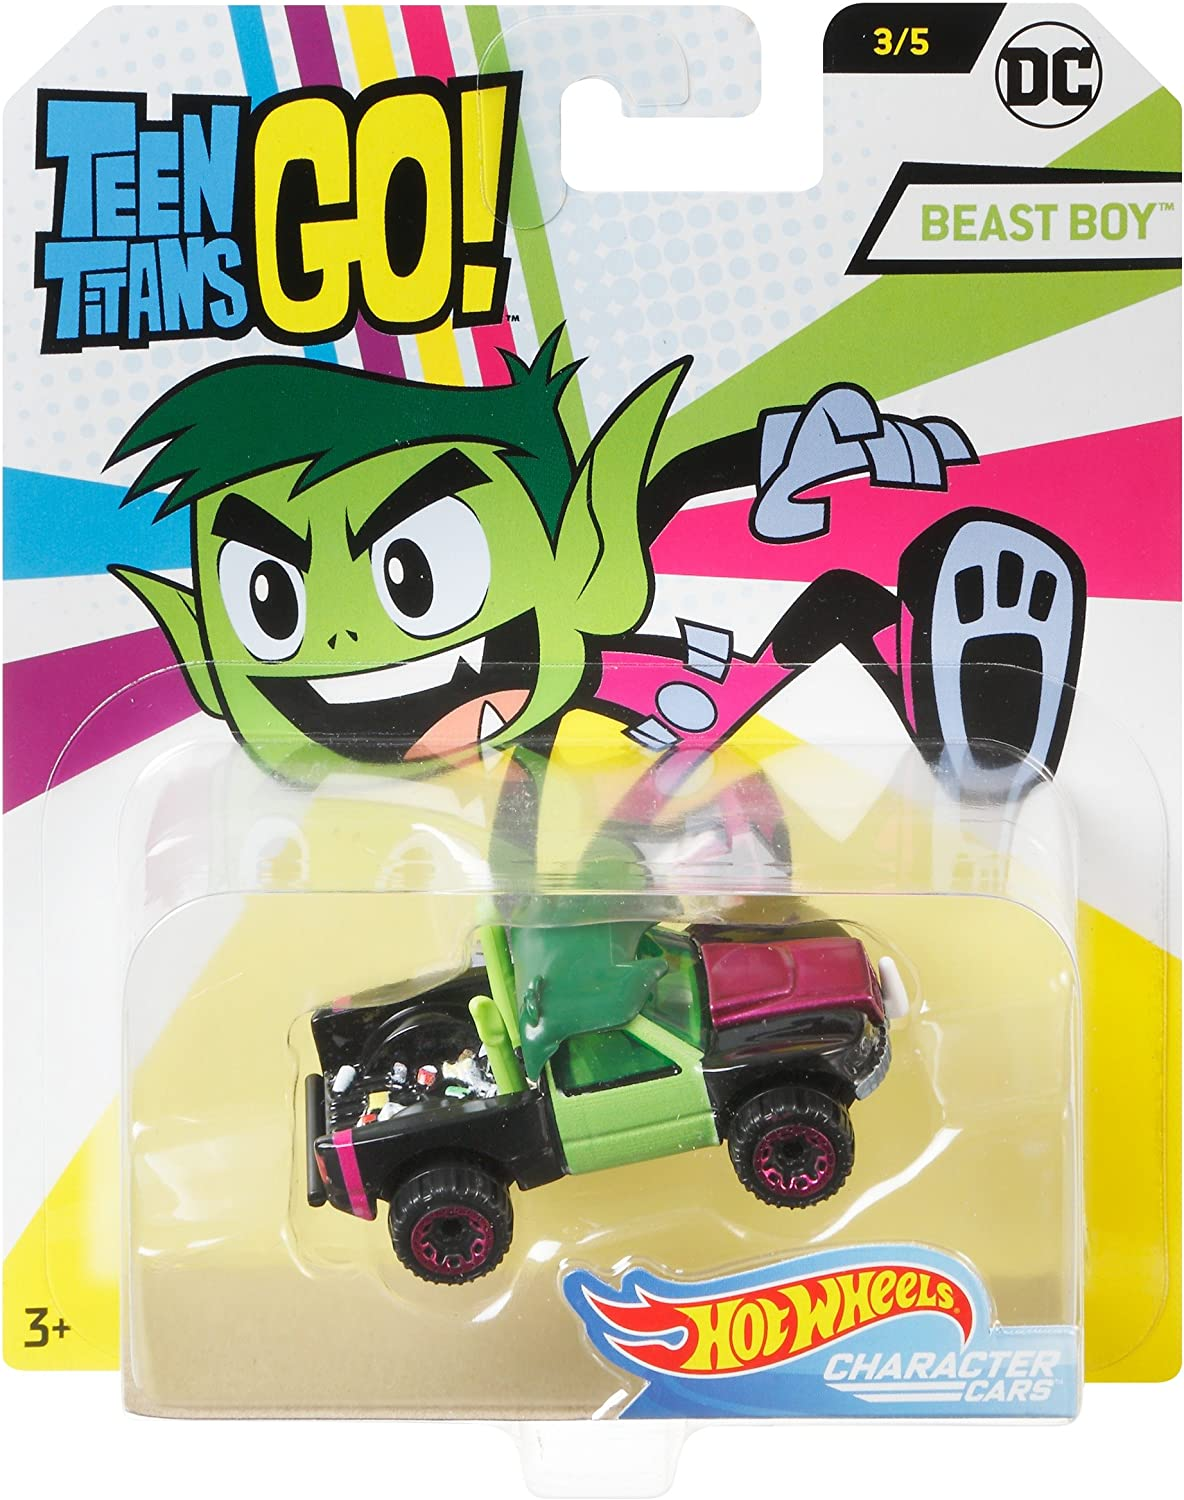 Hot Wheels Teen Titans Go Beast Boy Vehicle, 1:64 Scale: Amazon.es: Juguetes y juegos